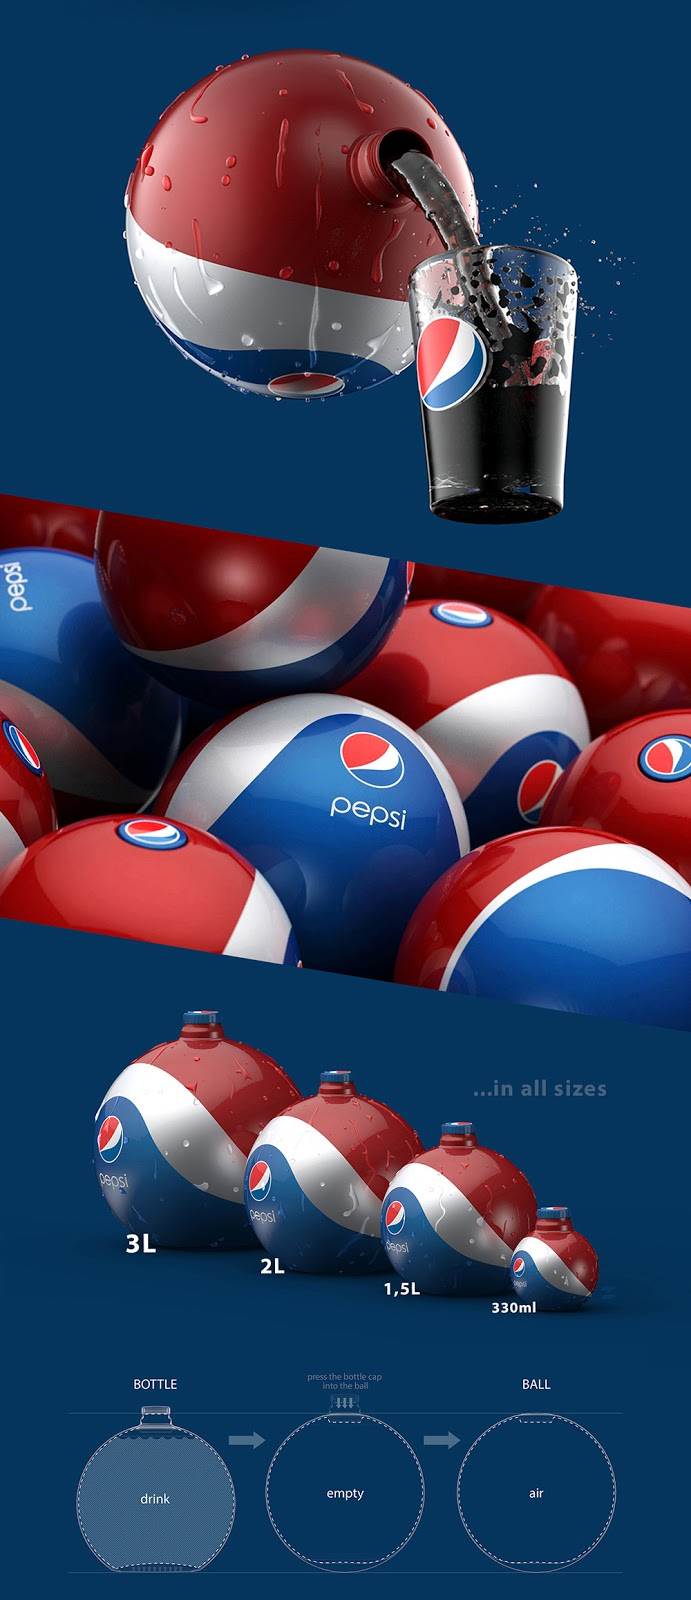 Pepsi Rubber Ball  Bottle Concept on Packaging of the World  Creative Package Design Gallery